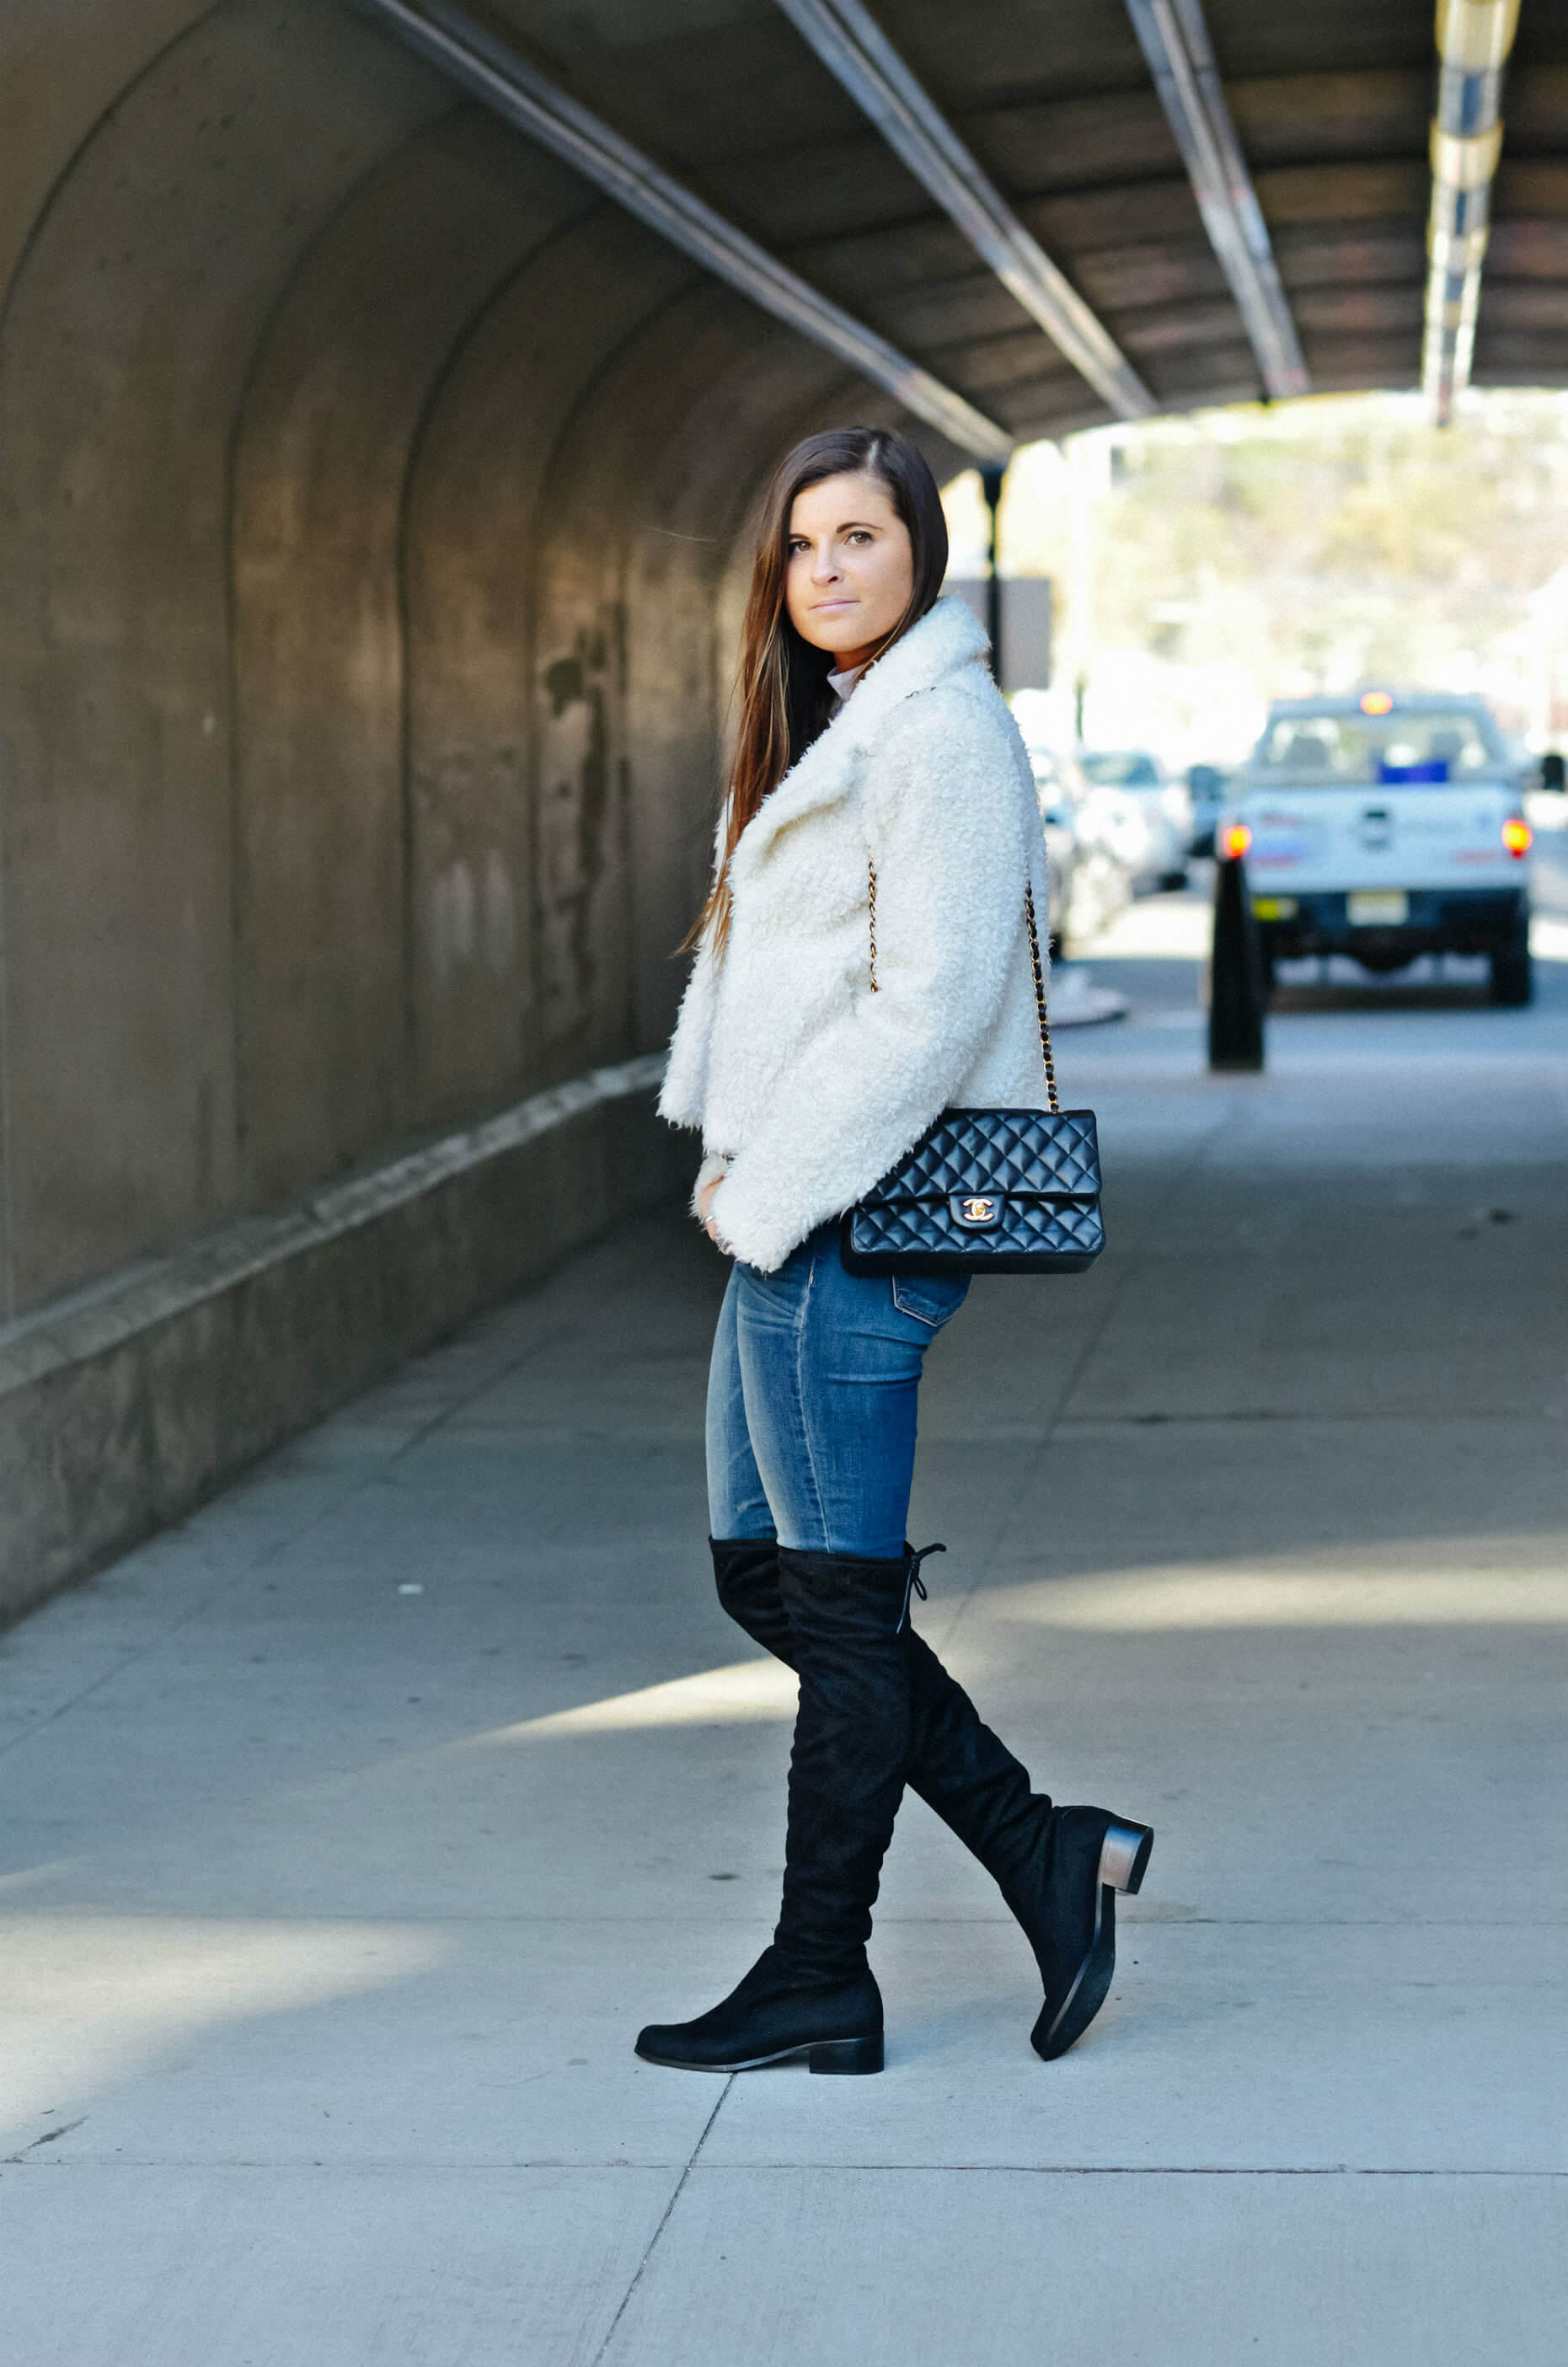 Winter Outfit Inspiration, White Faux Fur Jacket, Over The Knee Boots, Tilden of To Be Bright